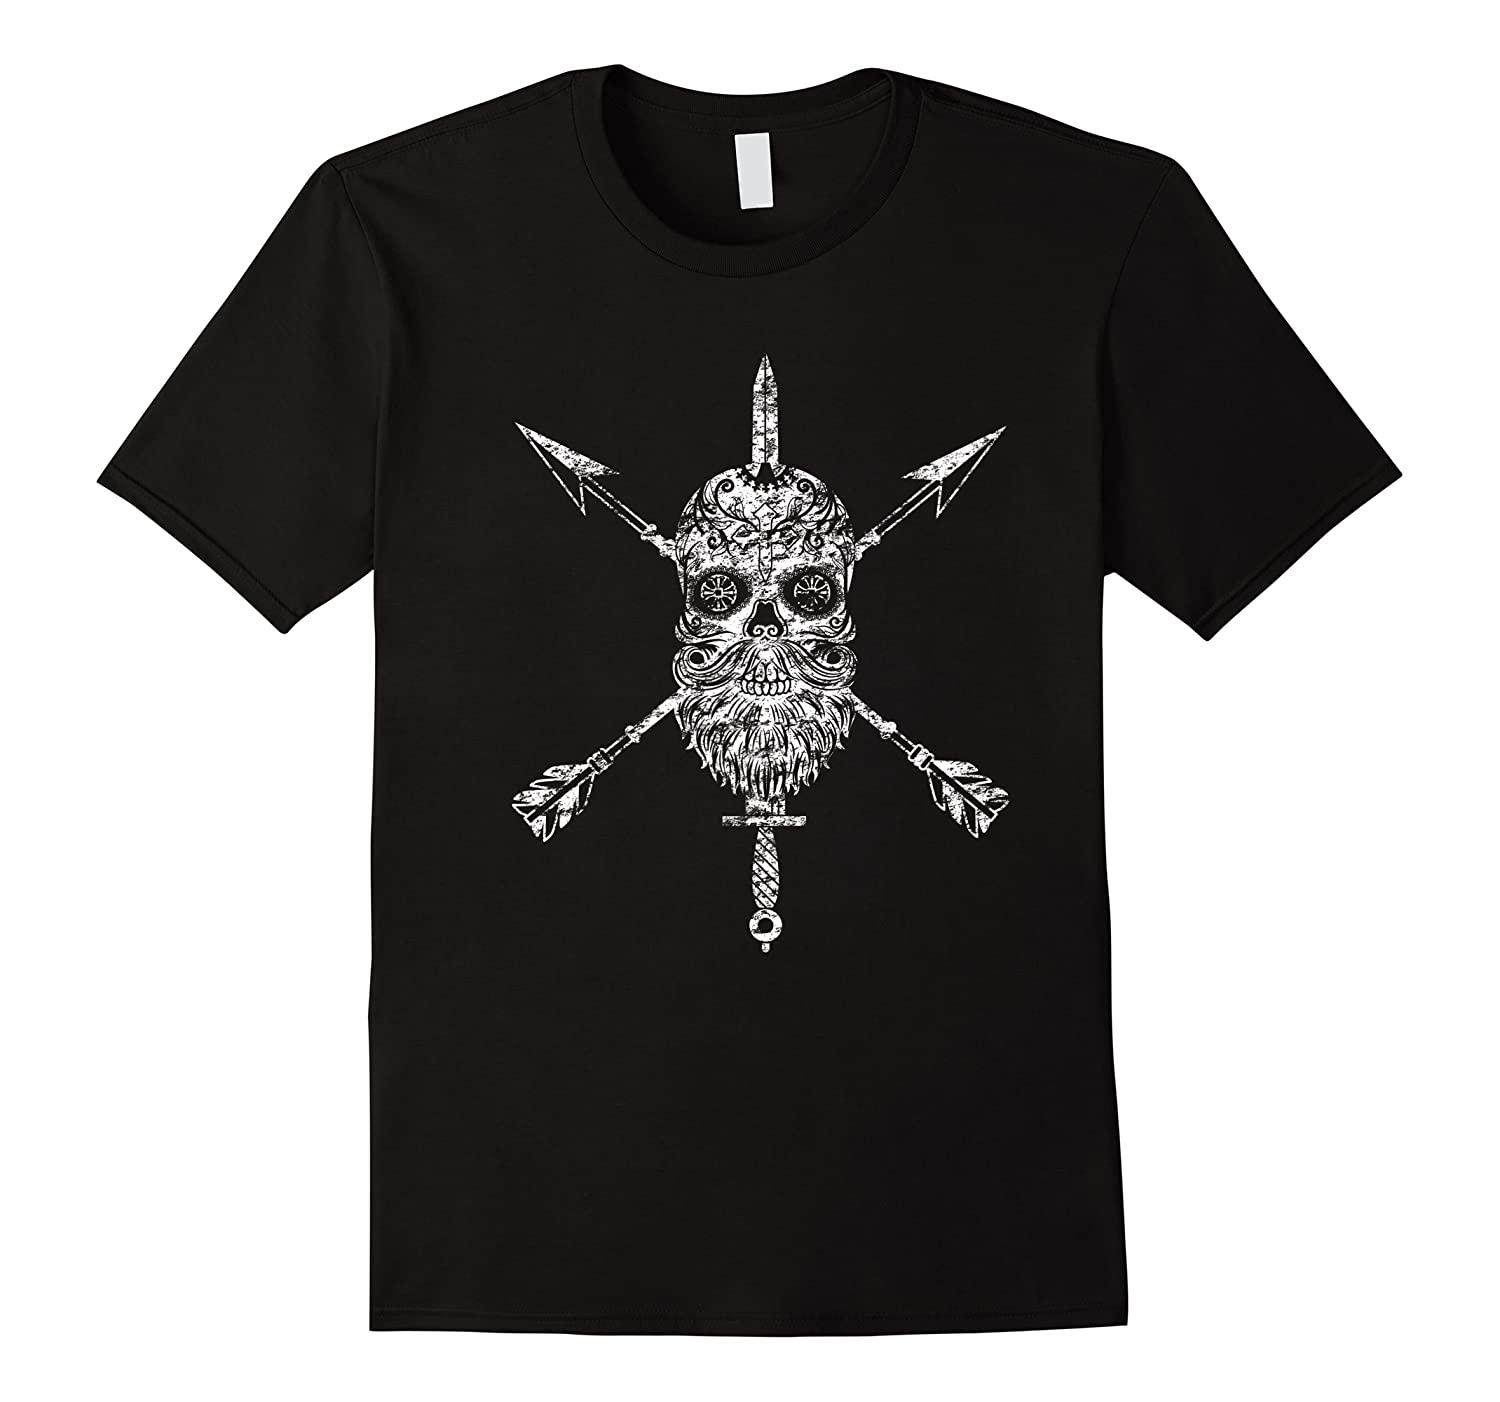 Vintage Sugar Skull Special Forces Military Tribute Design Shirts